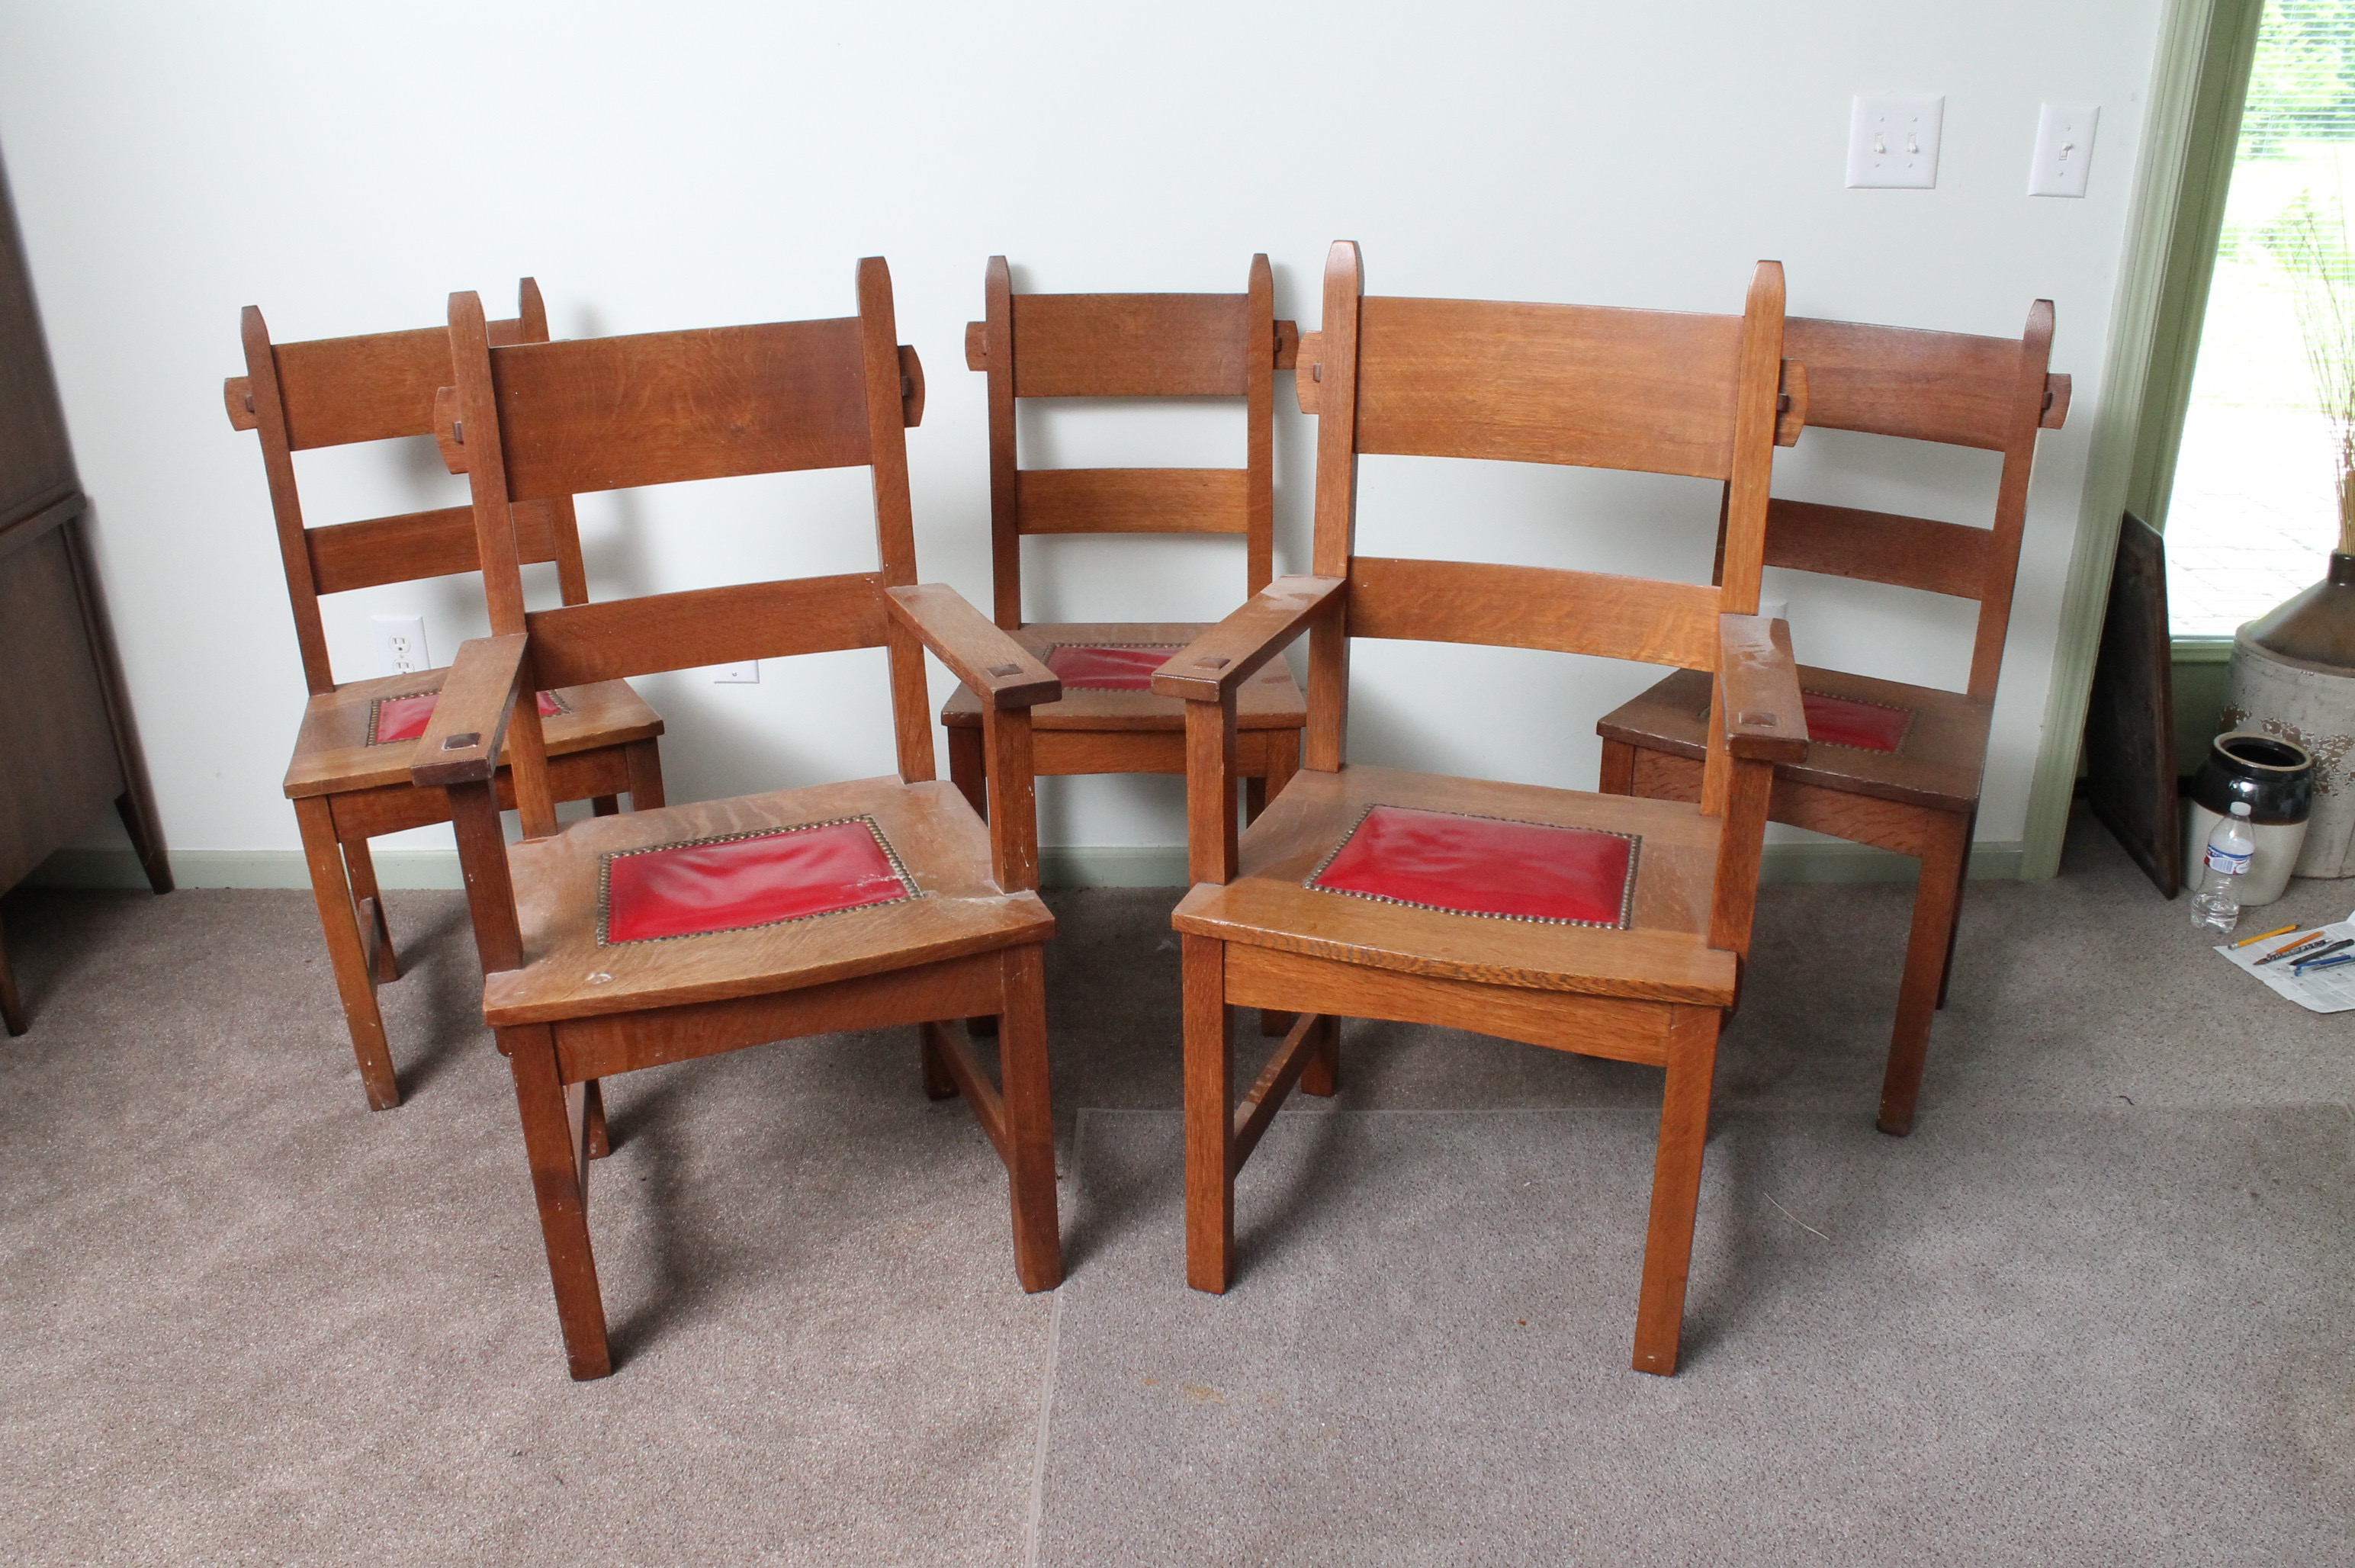 craftsman style chairs chair exercises for abs vintage oak dining ebth